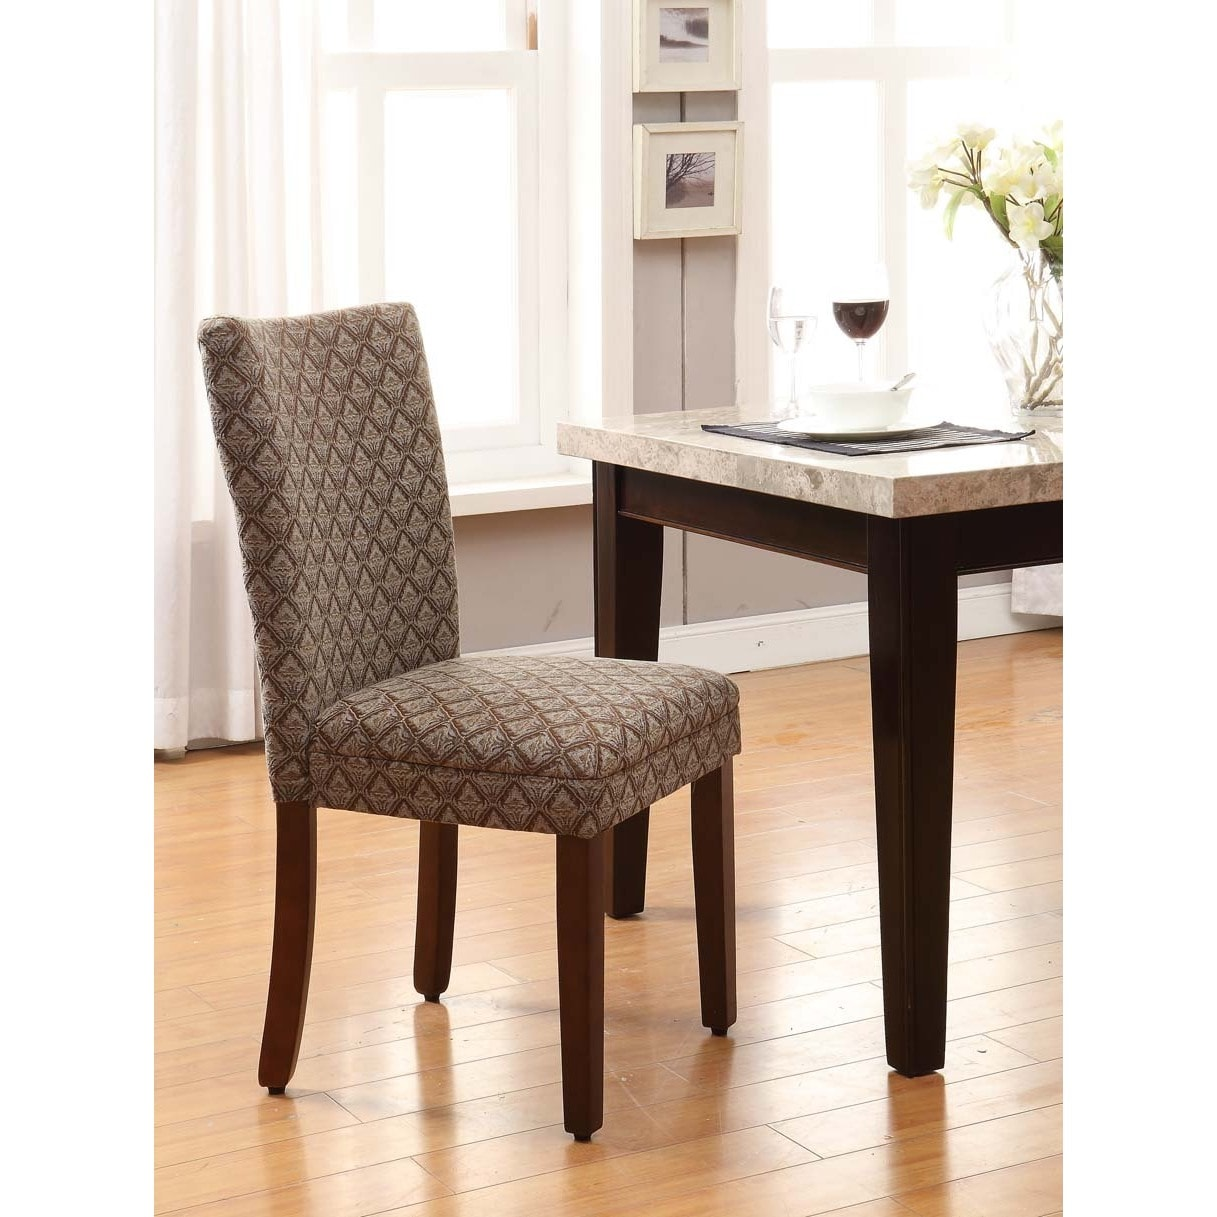 Copper Dining Chairs Fabric Dining Room Chairs